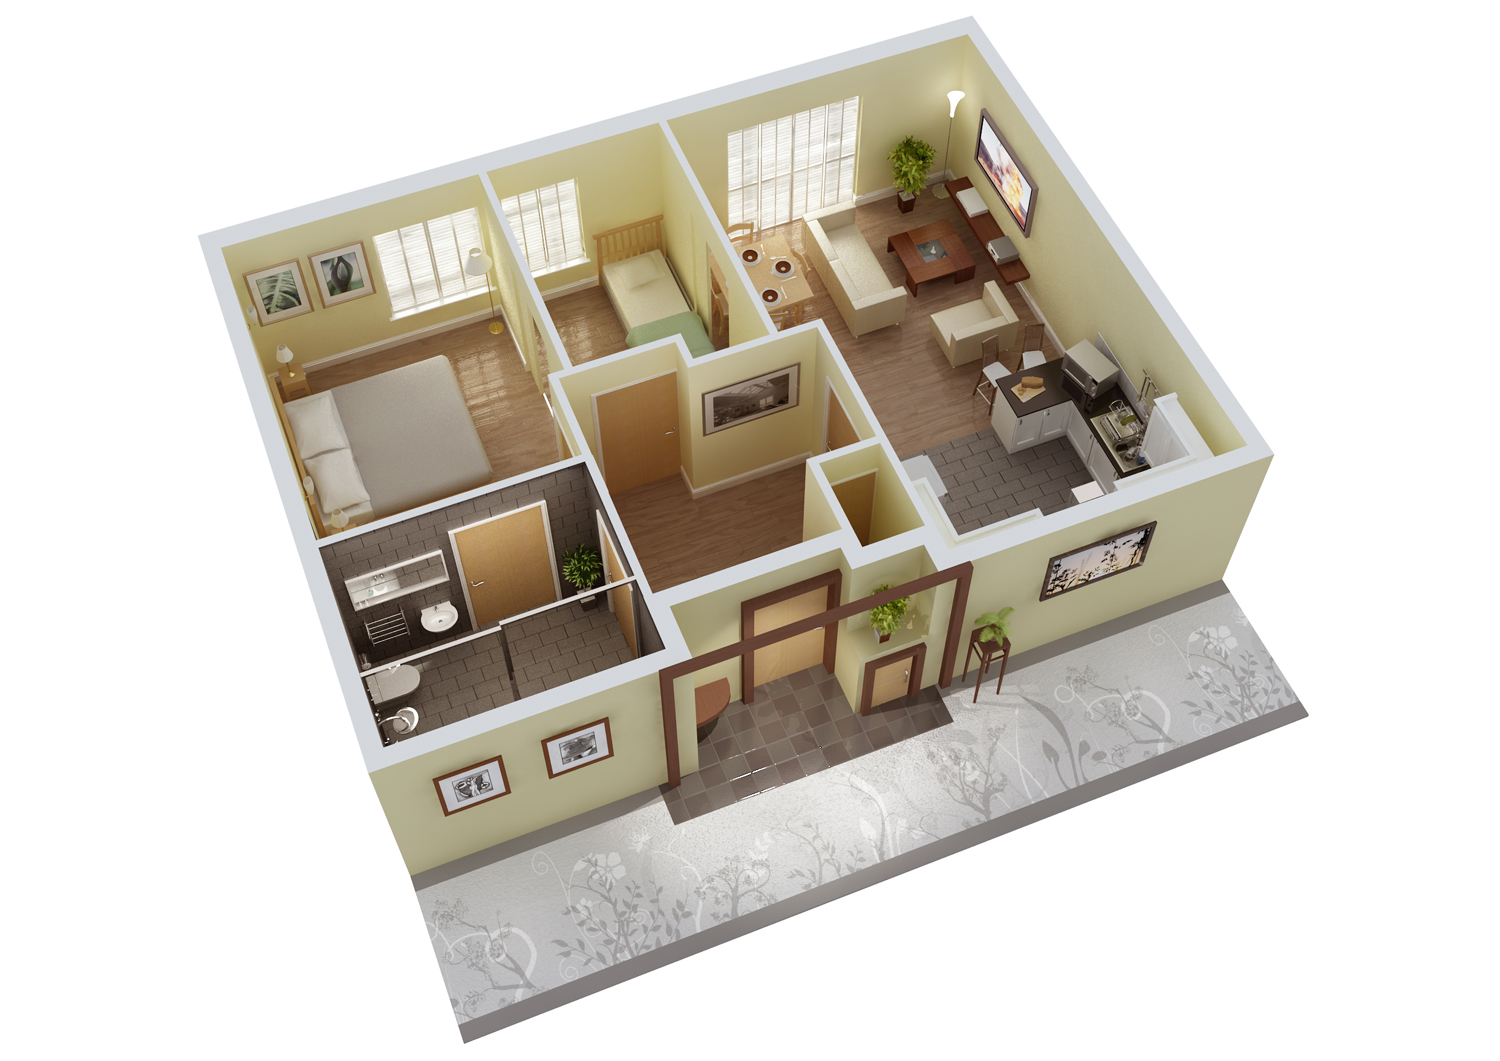 Mathematics resources project 3d floor plan for House plan ideas